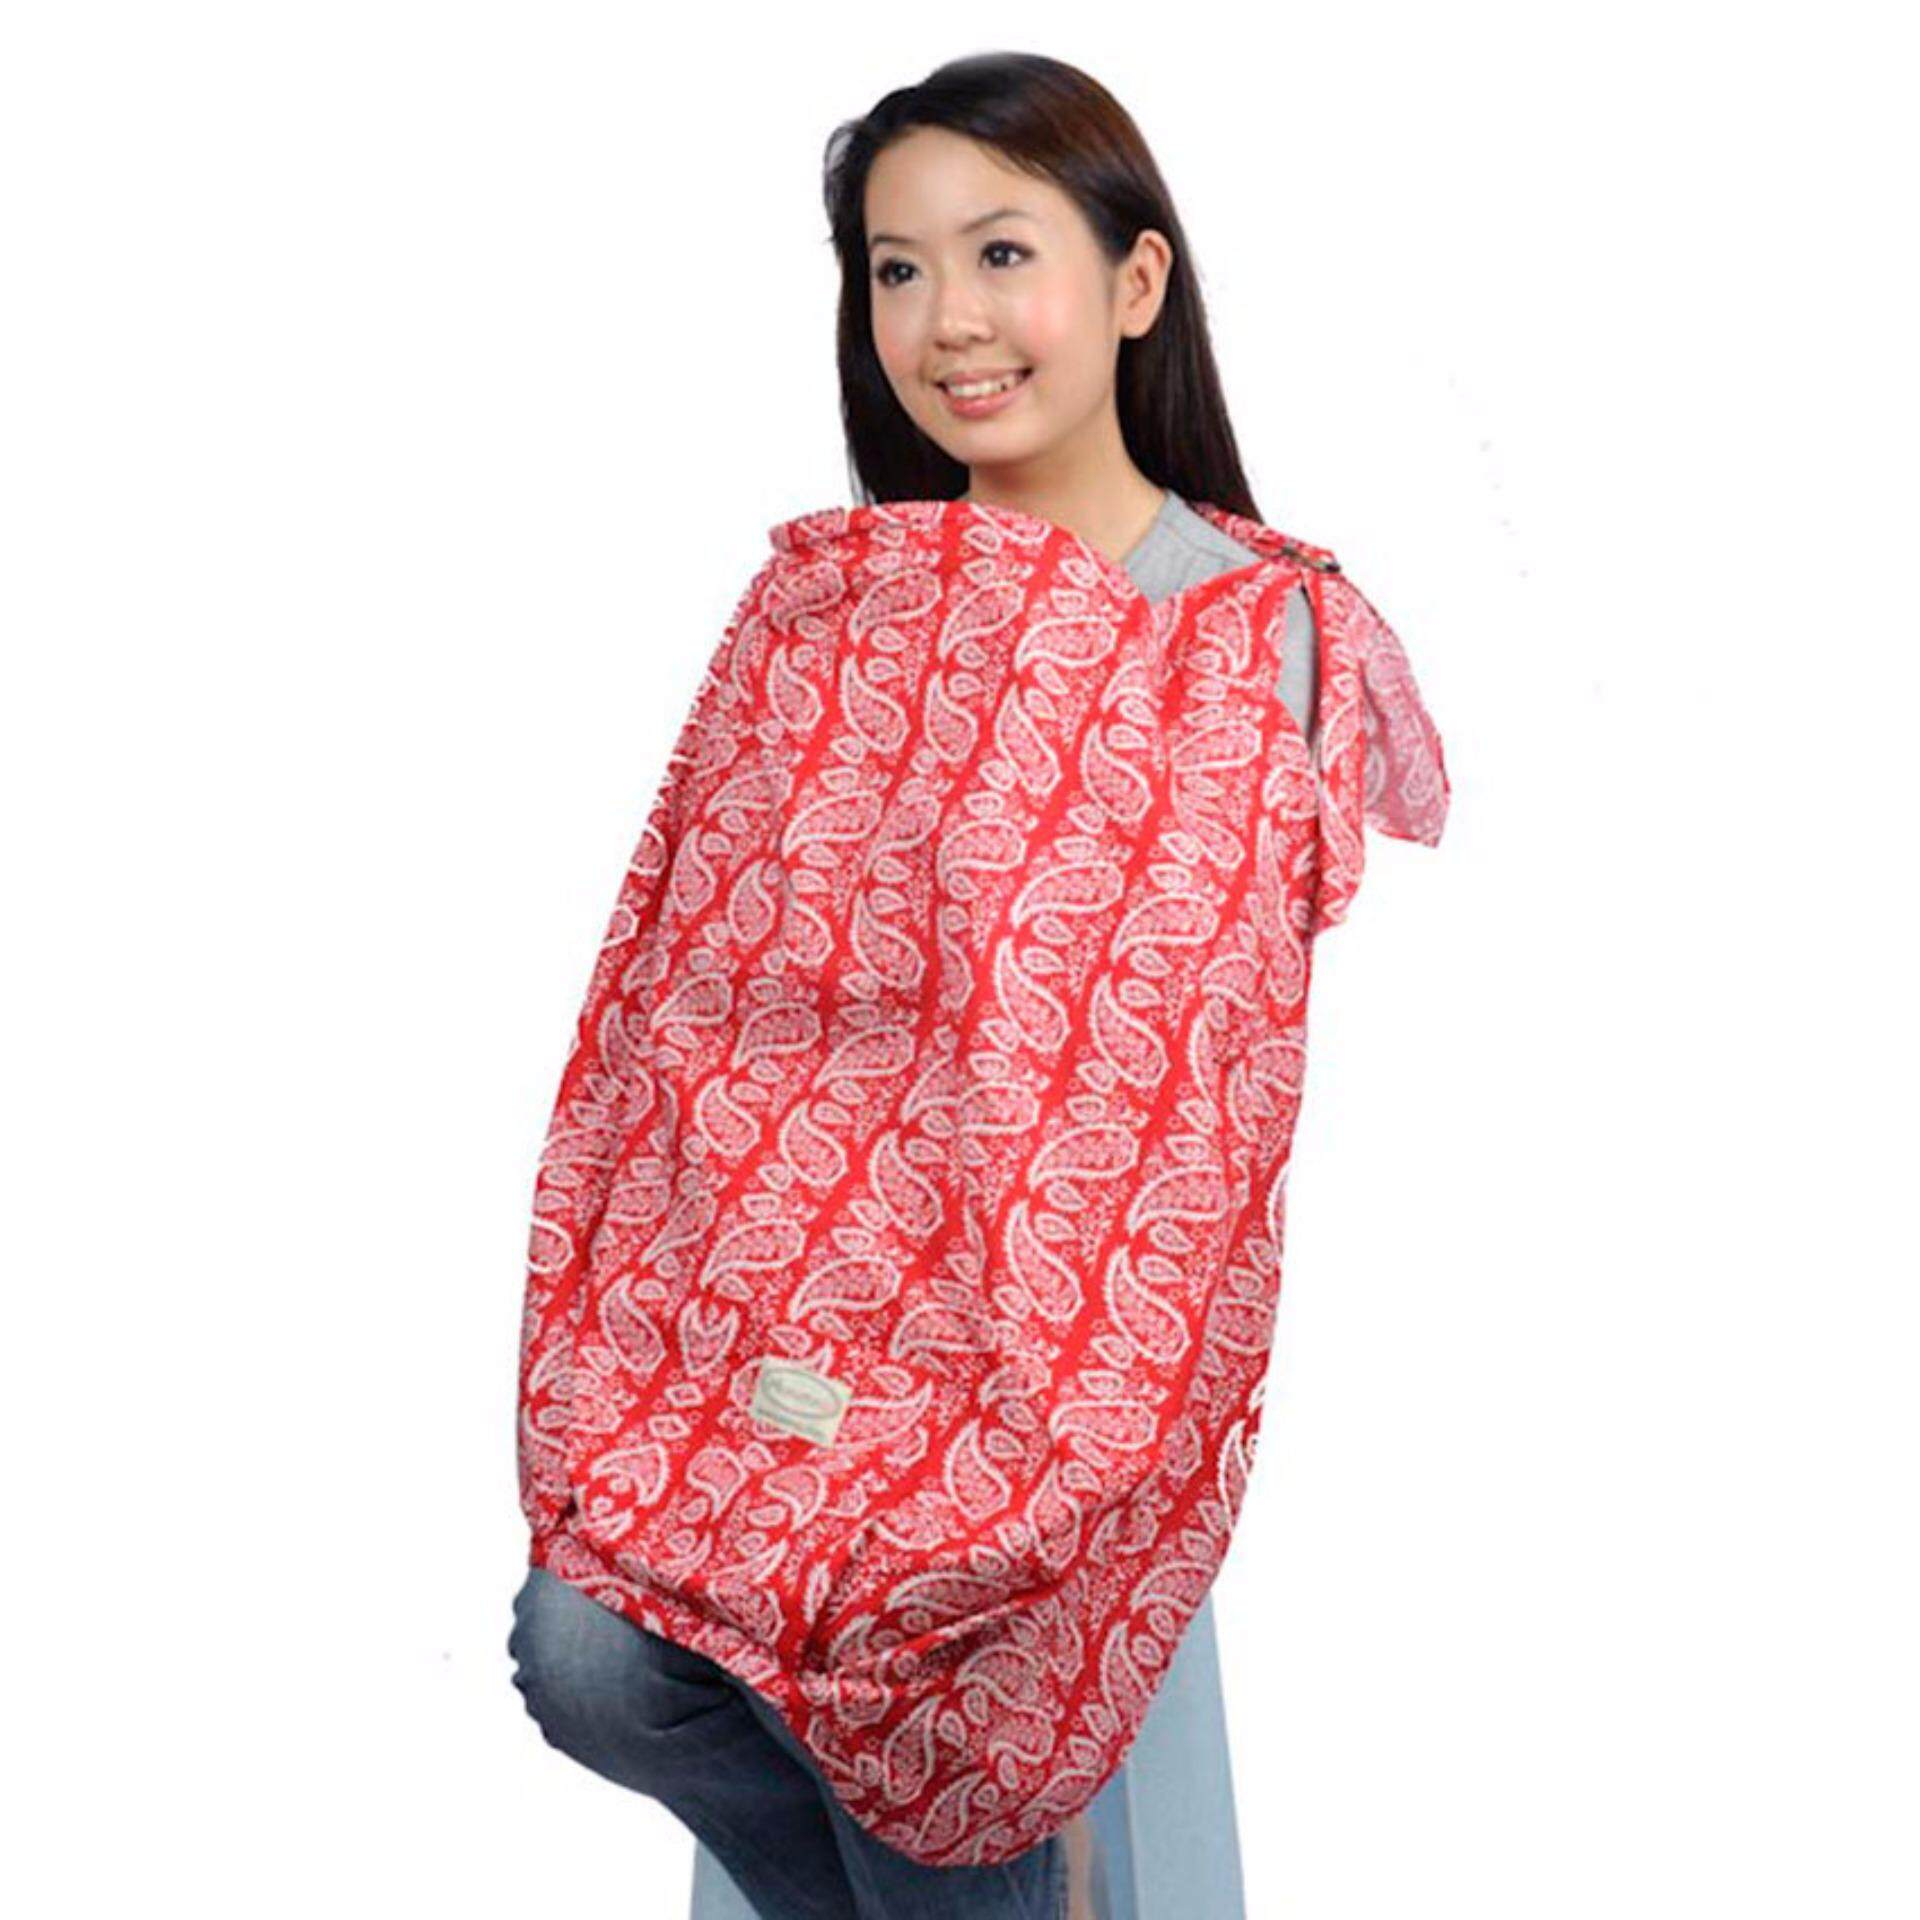 Autumnz Posh Nursing Cover Sanctuary Red